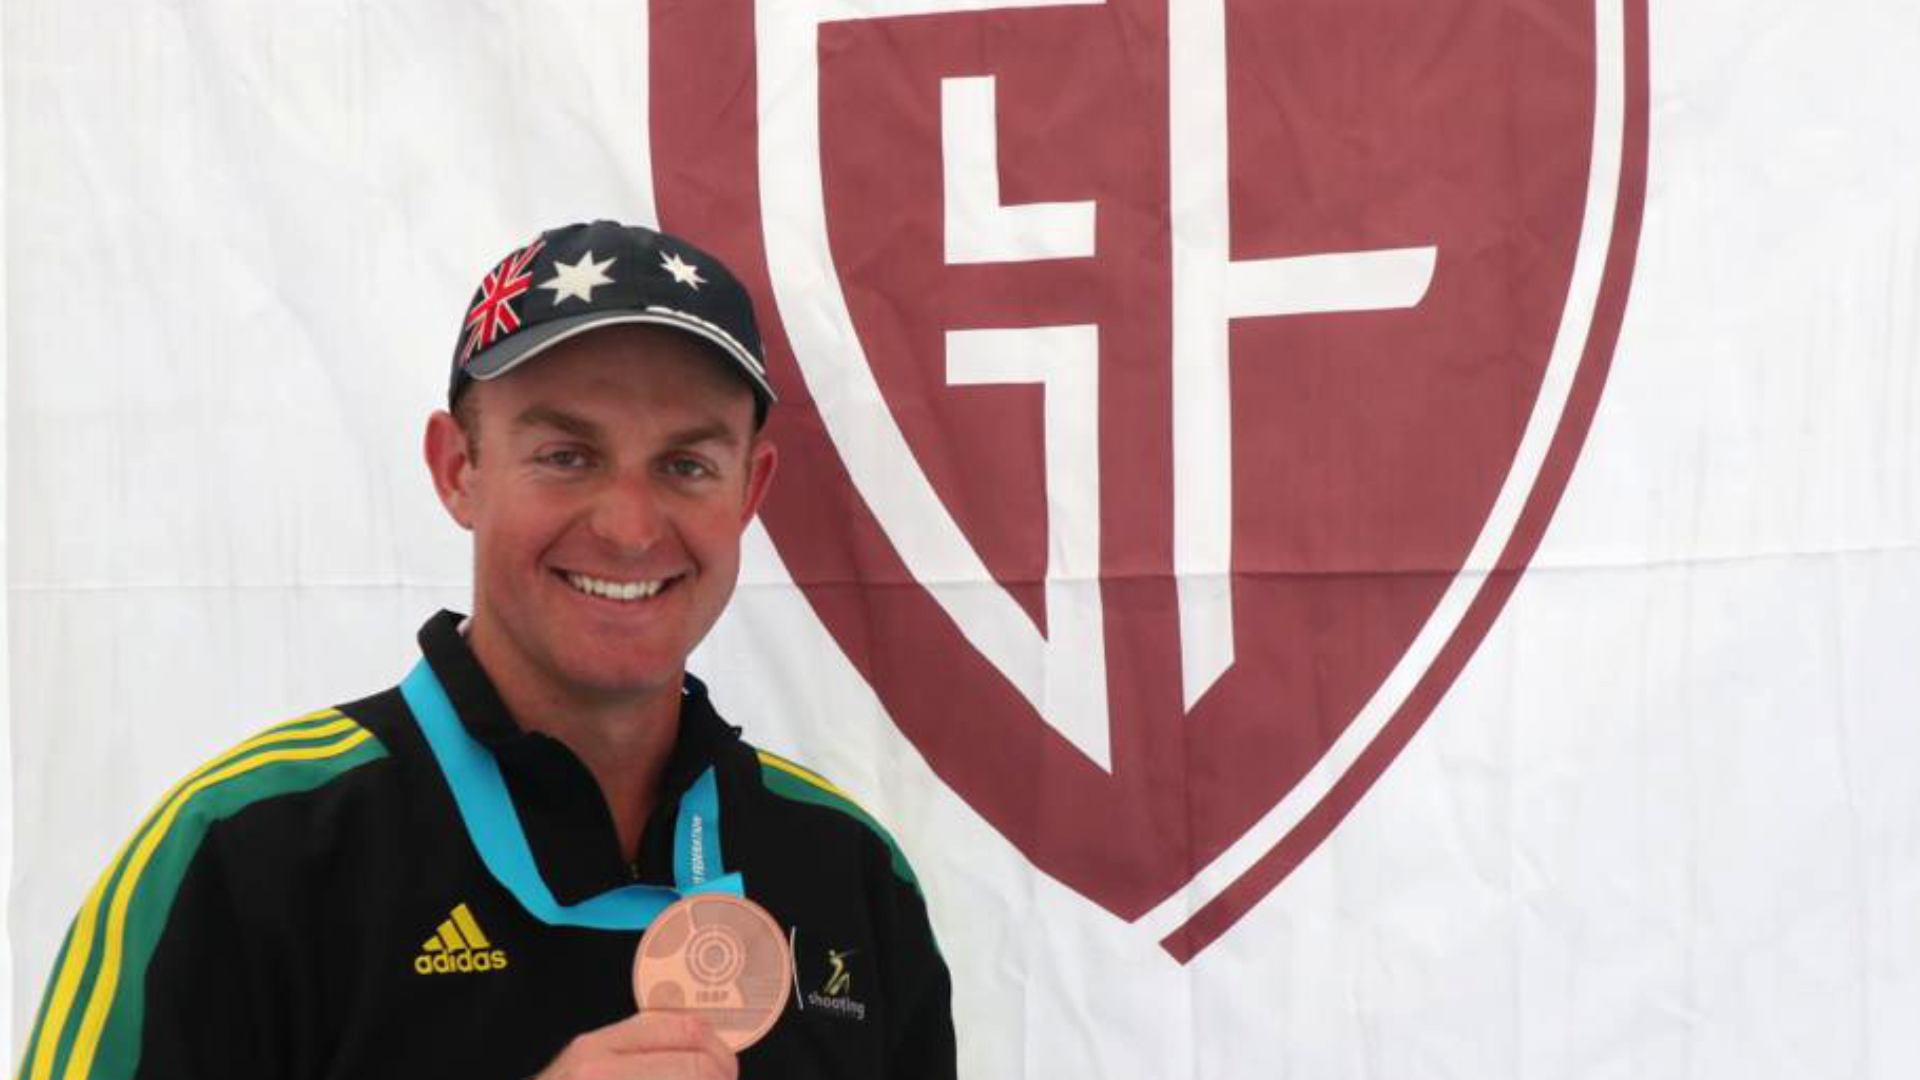 CHANGWONG SHOTGUN WORLD CUP: FIOCCHI GAINS ONE MORE MEDAL